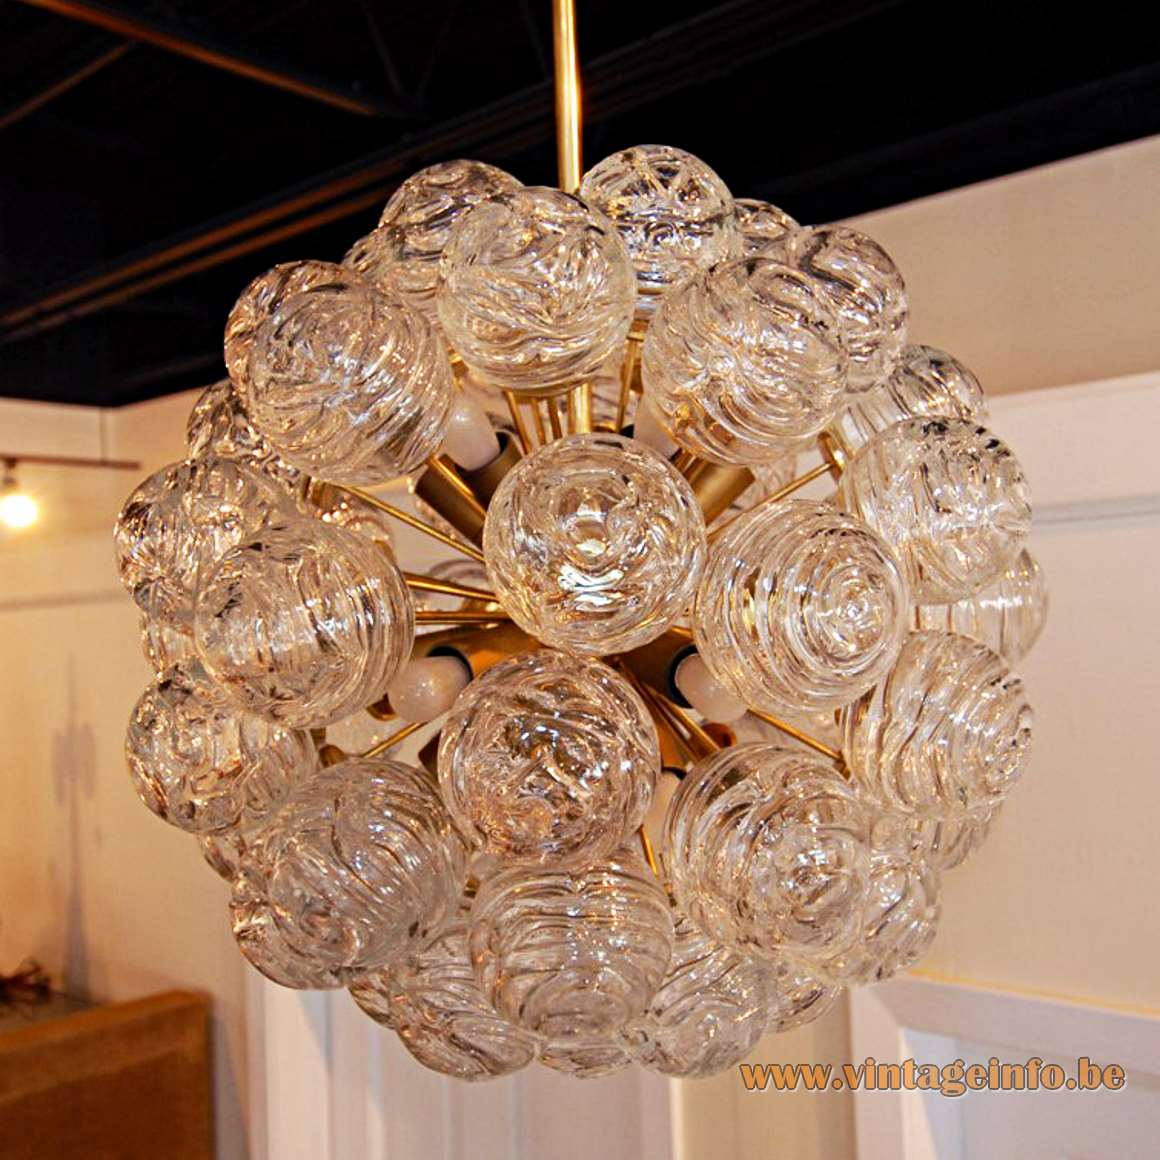 1960s Doria Snowball Sputnik Chandelier, Germany, swirled crystal glass balls, brass